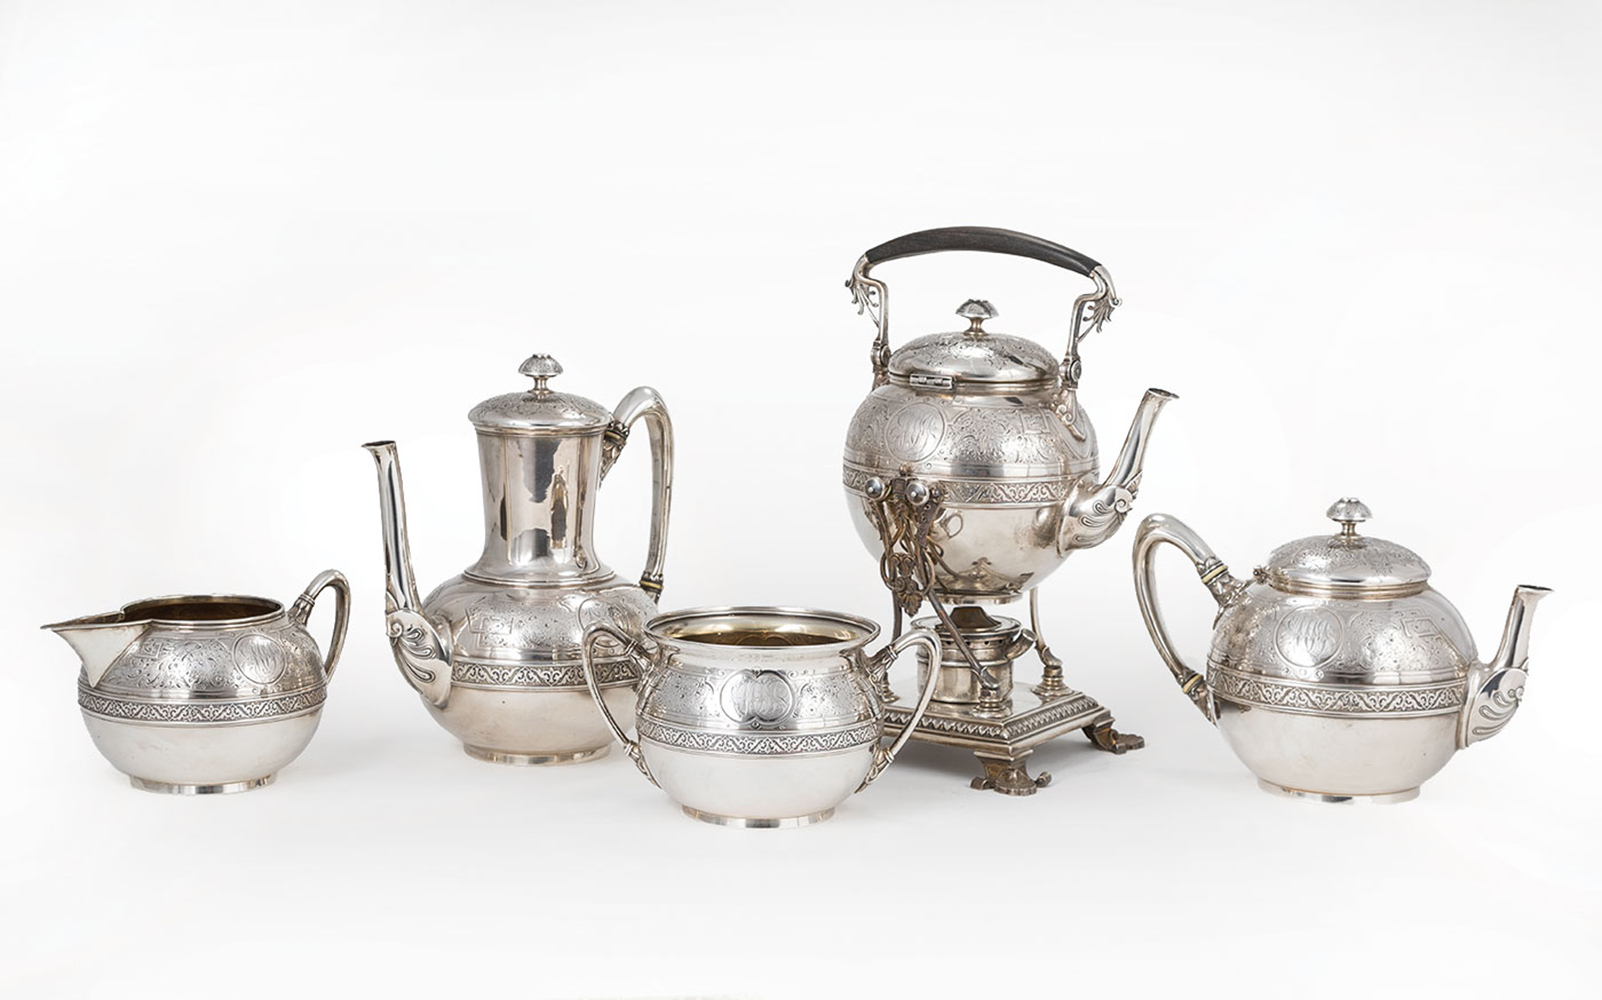 Lot 131 - American Neo-Grec Sterling Silver Tea and Coffee Service , Starr & Marcus, New York, act. 1864-1877,